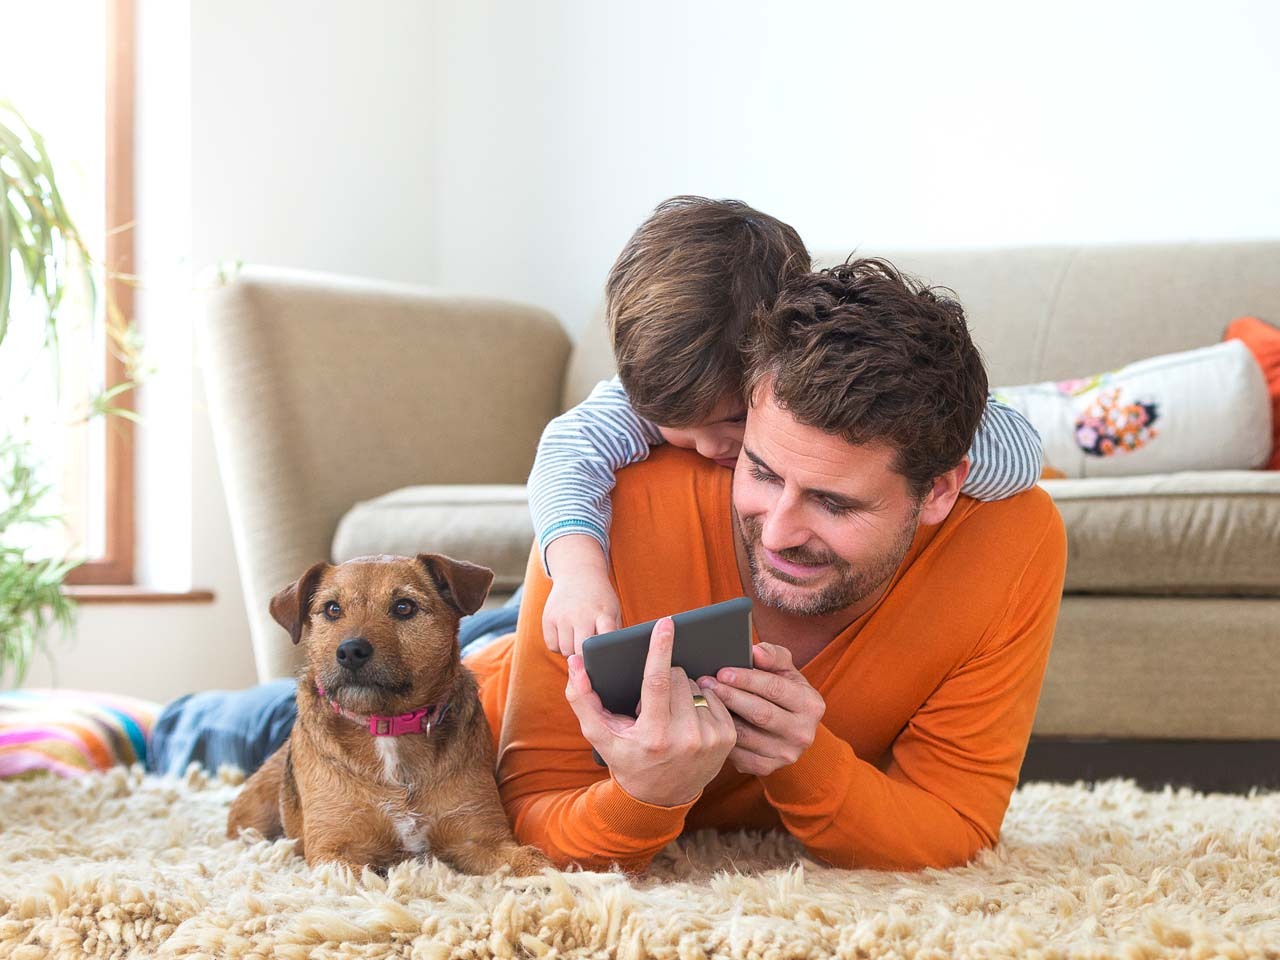 Man on floor looking at smartphone while child and dog are next to him.